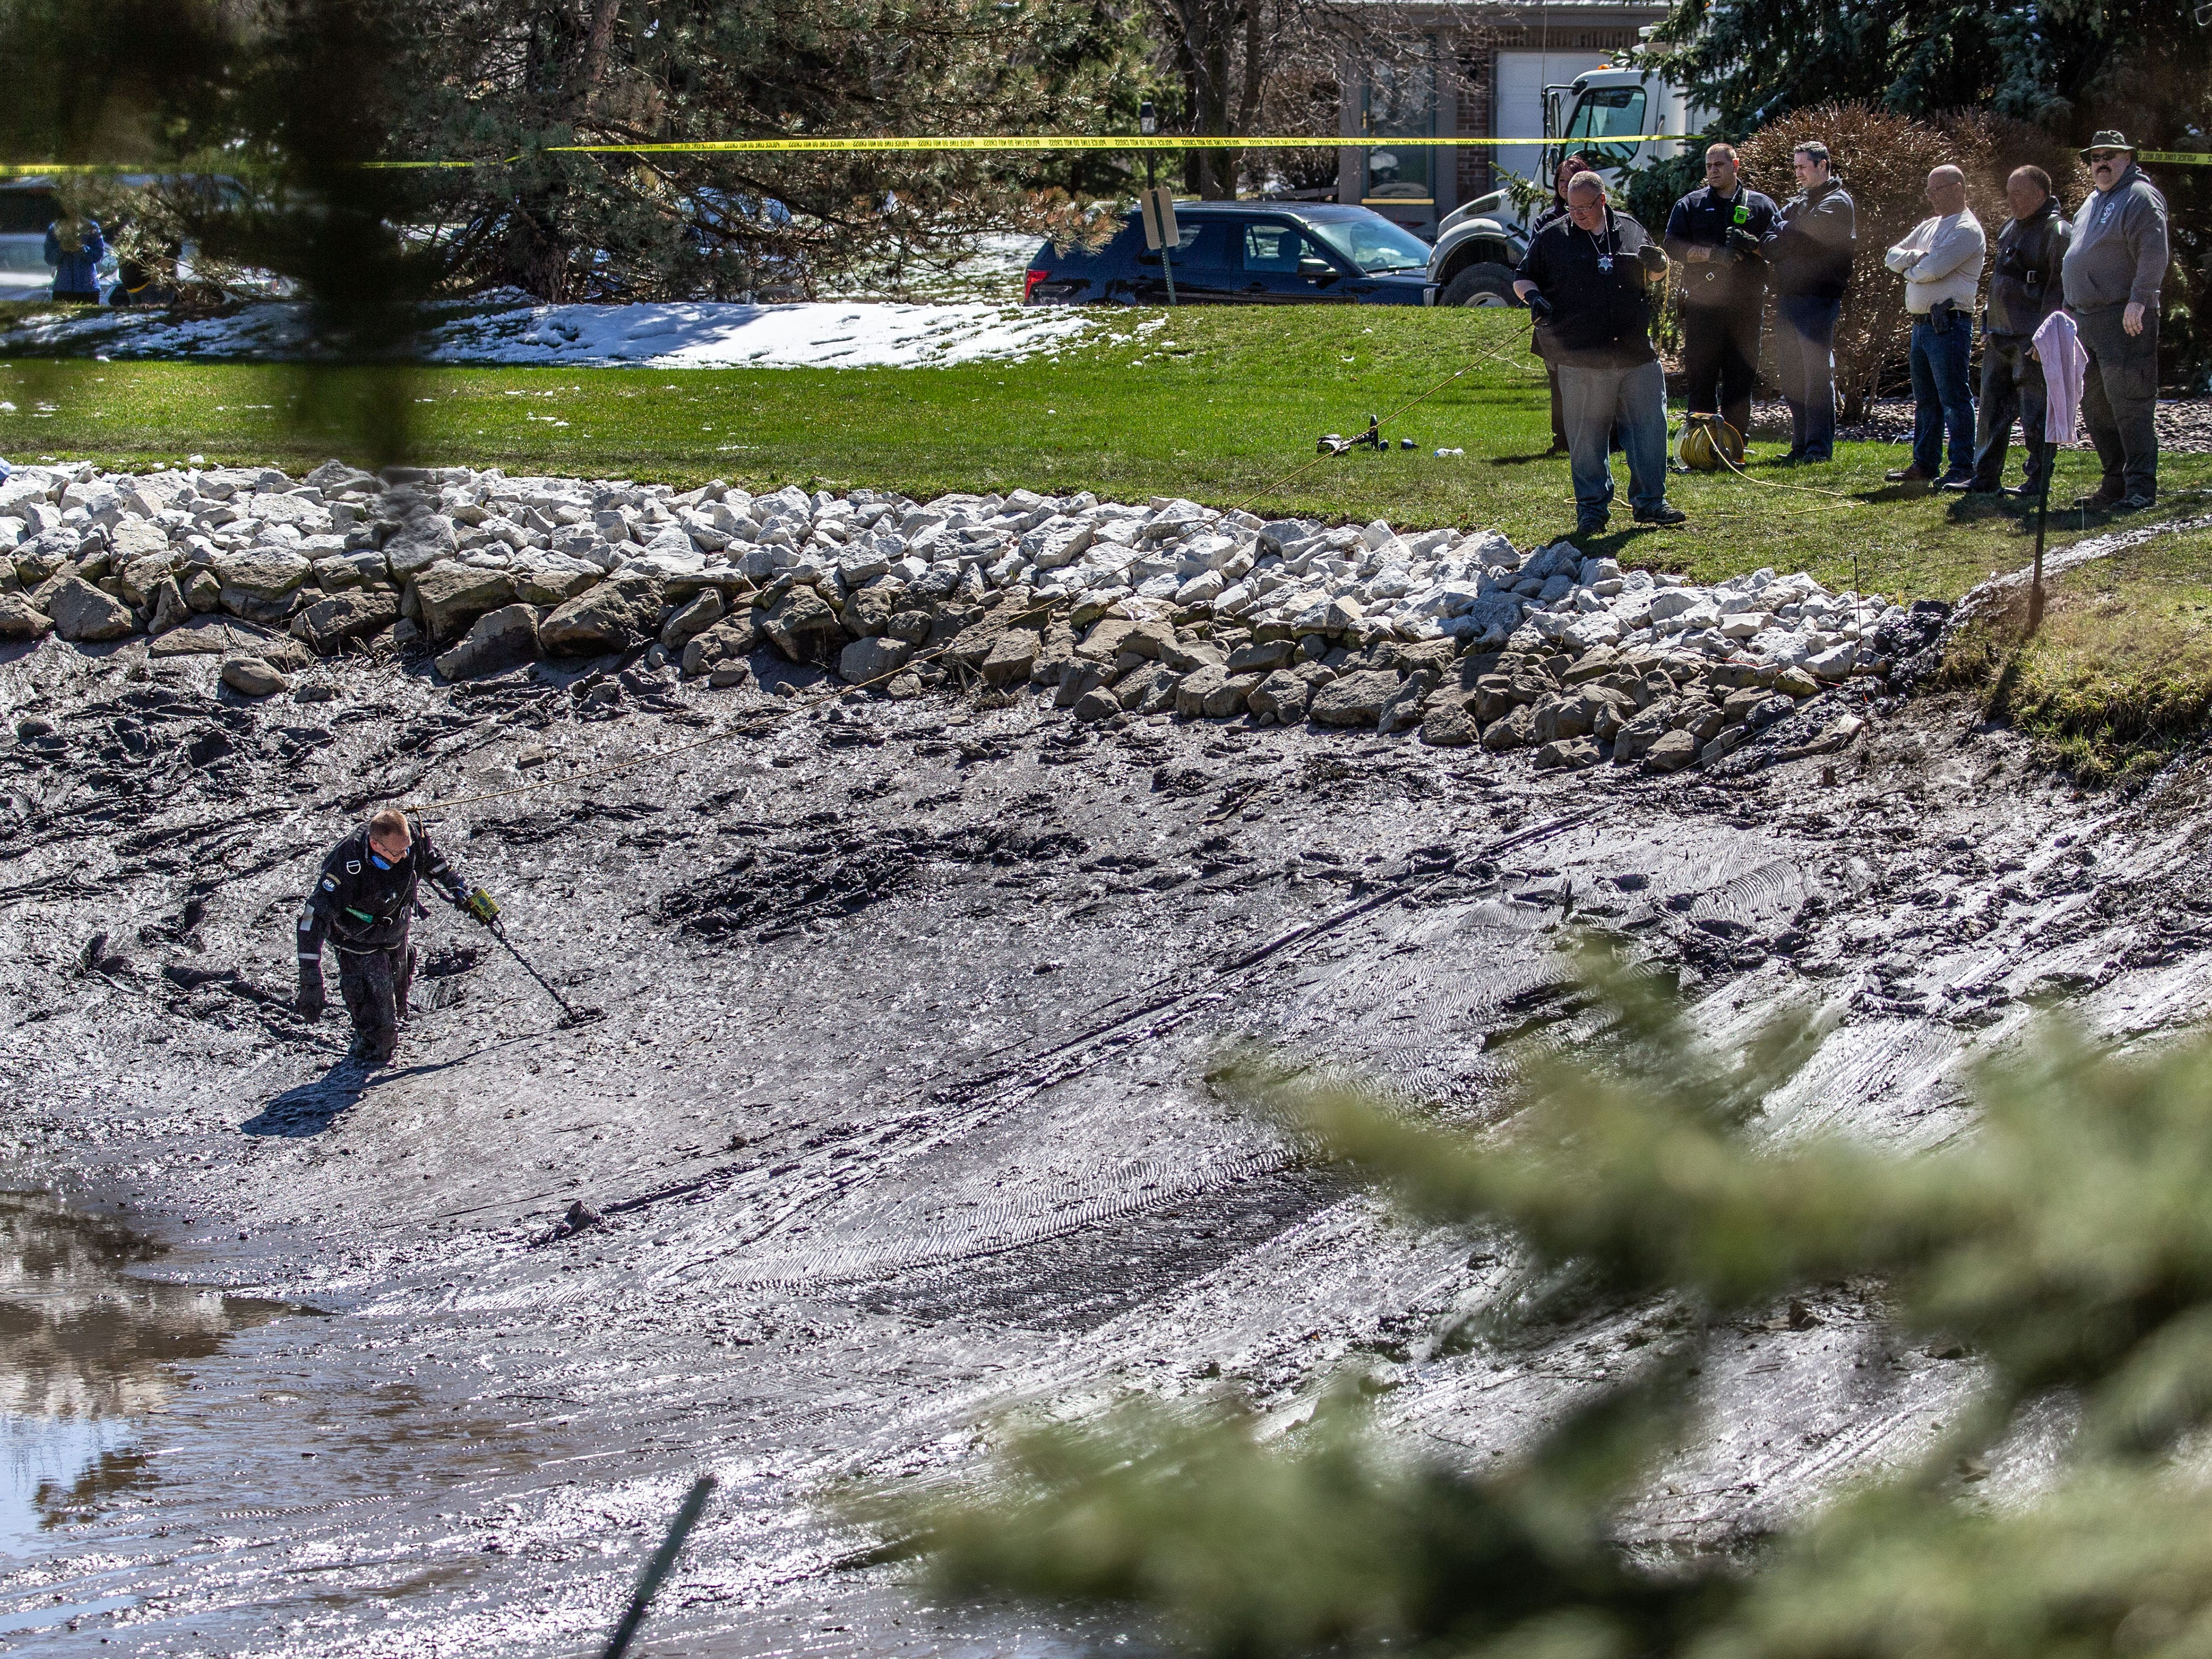 A member of the Waukesha County Sheriff's Dive Team uses a metal detector to search for evidence in a drained pond at the Brookfield Lake Condominiums on Monday, April 15, 2019. The search is related to a November homicide.